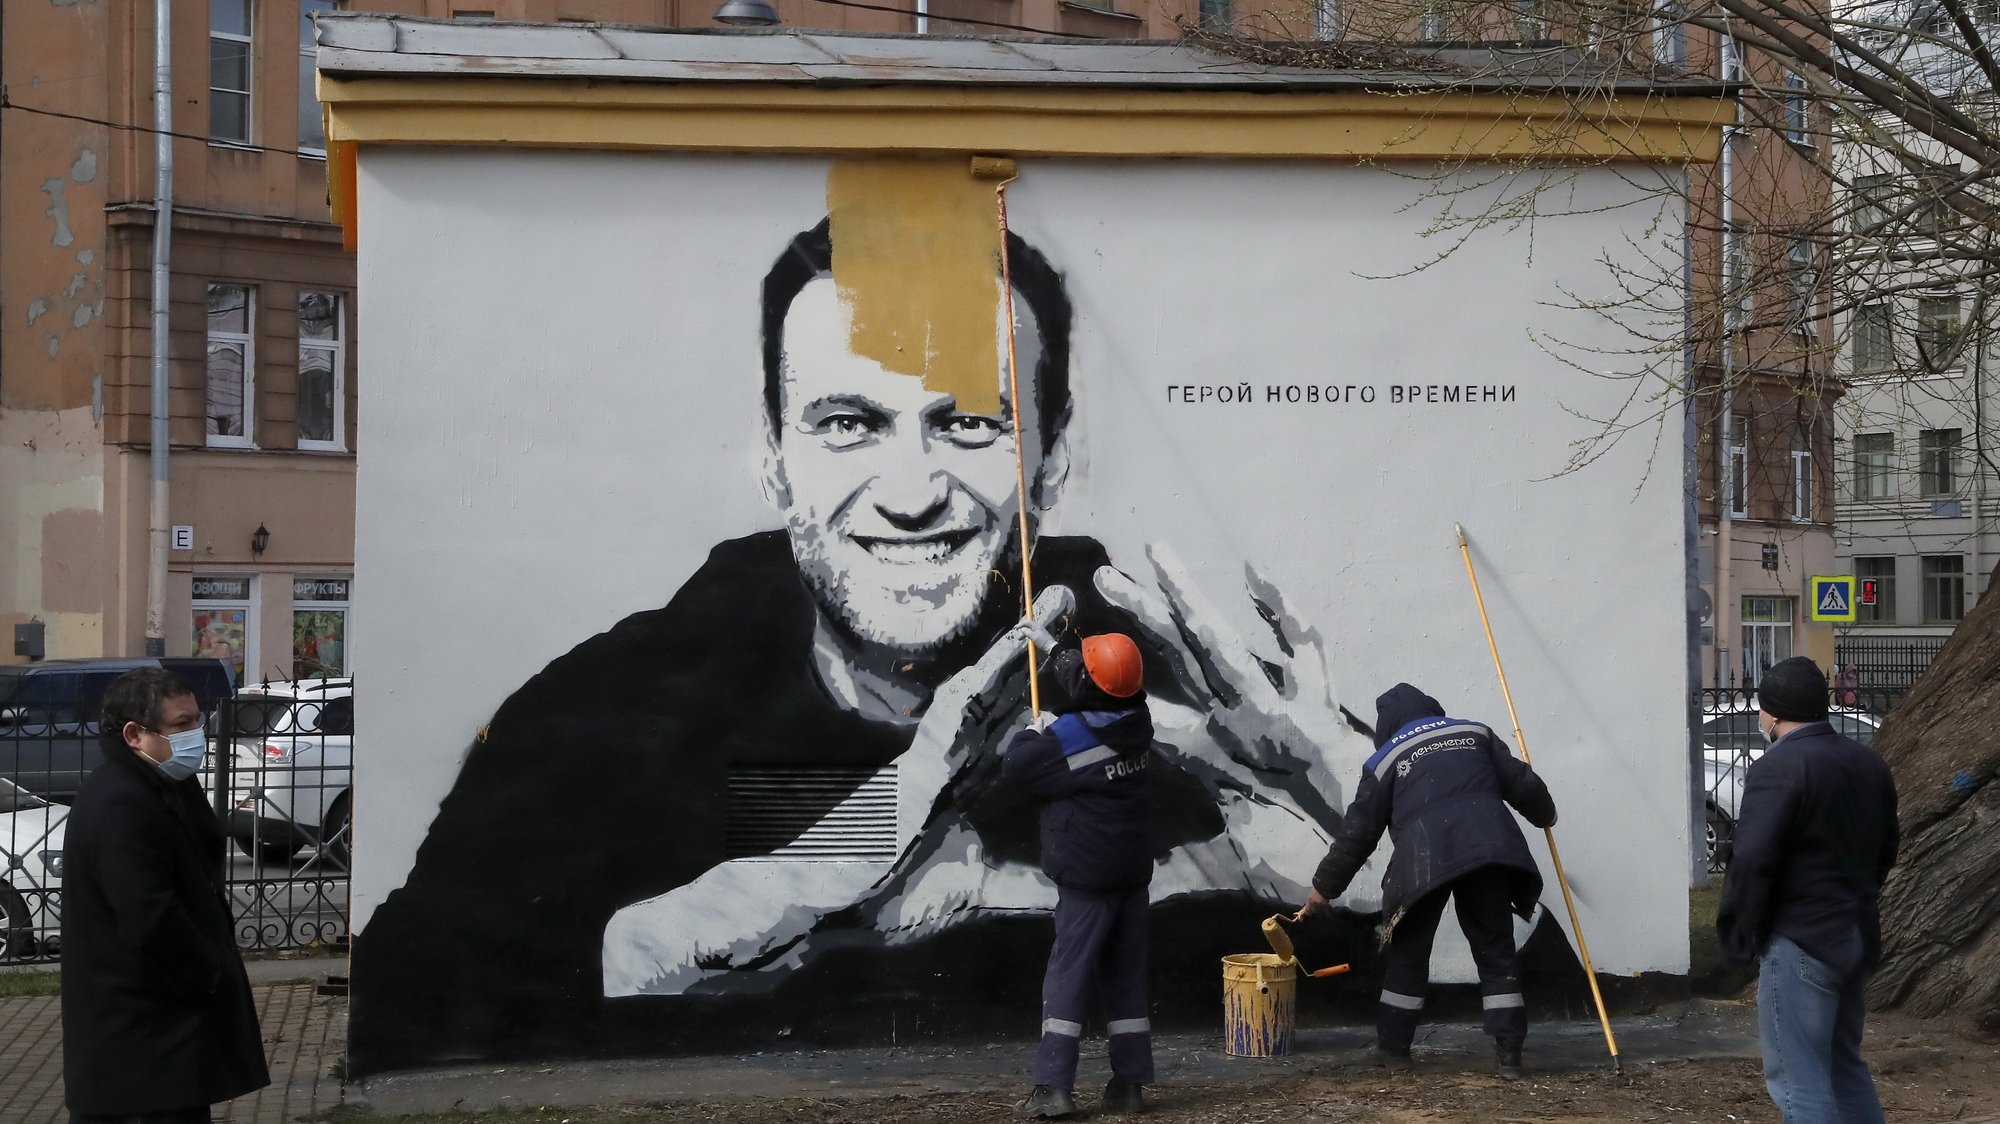 epaselect epa09164791 Municipal workers paint over a graffiti depicting jailed Russian opposition politician Alexei Navalny with wordings reading, 'The hero of the new age', in St. Petersburg, Russia, 28 April 2021. Navalny is currently being held at a prison camp northeast of Moscow, sentenced to imprisonment at the penal camp in early February 2021 for violating parole requirements related to an earlier suspended sentence over 2014 embezzlement charges.  EPA/ANATOLY MALTSEV